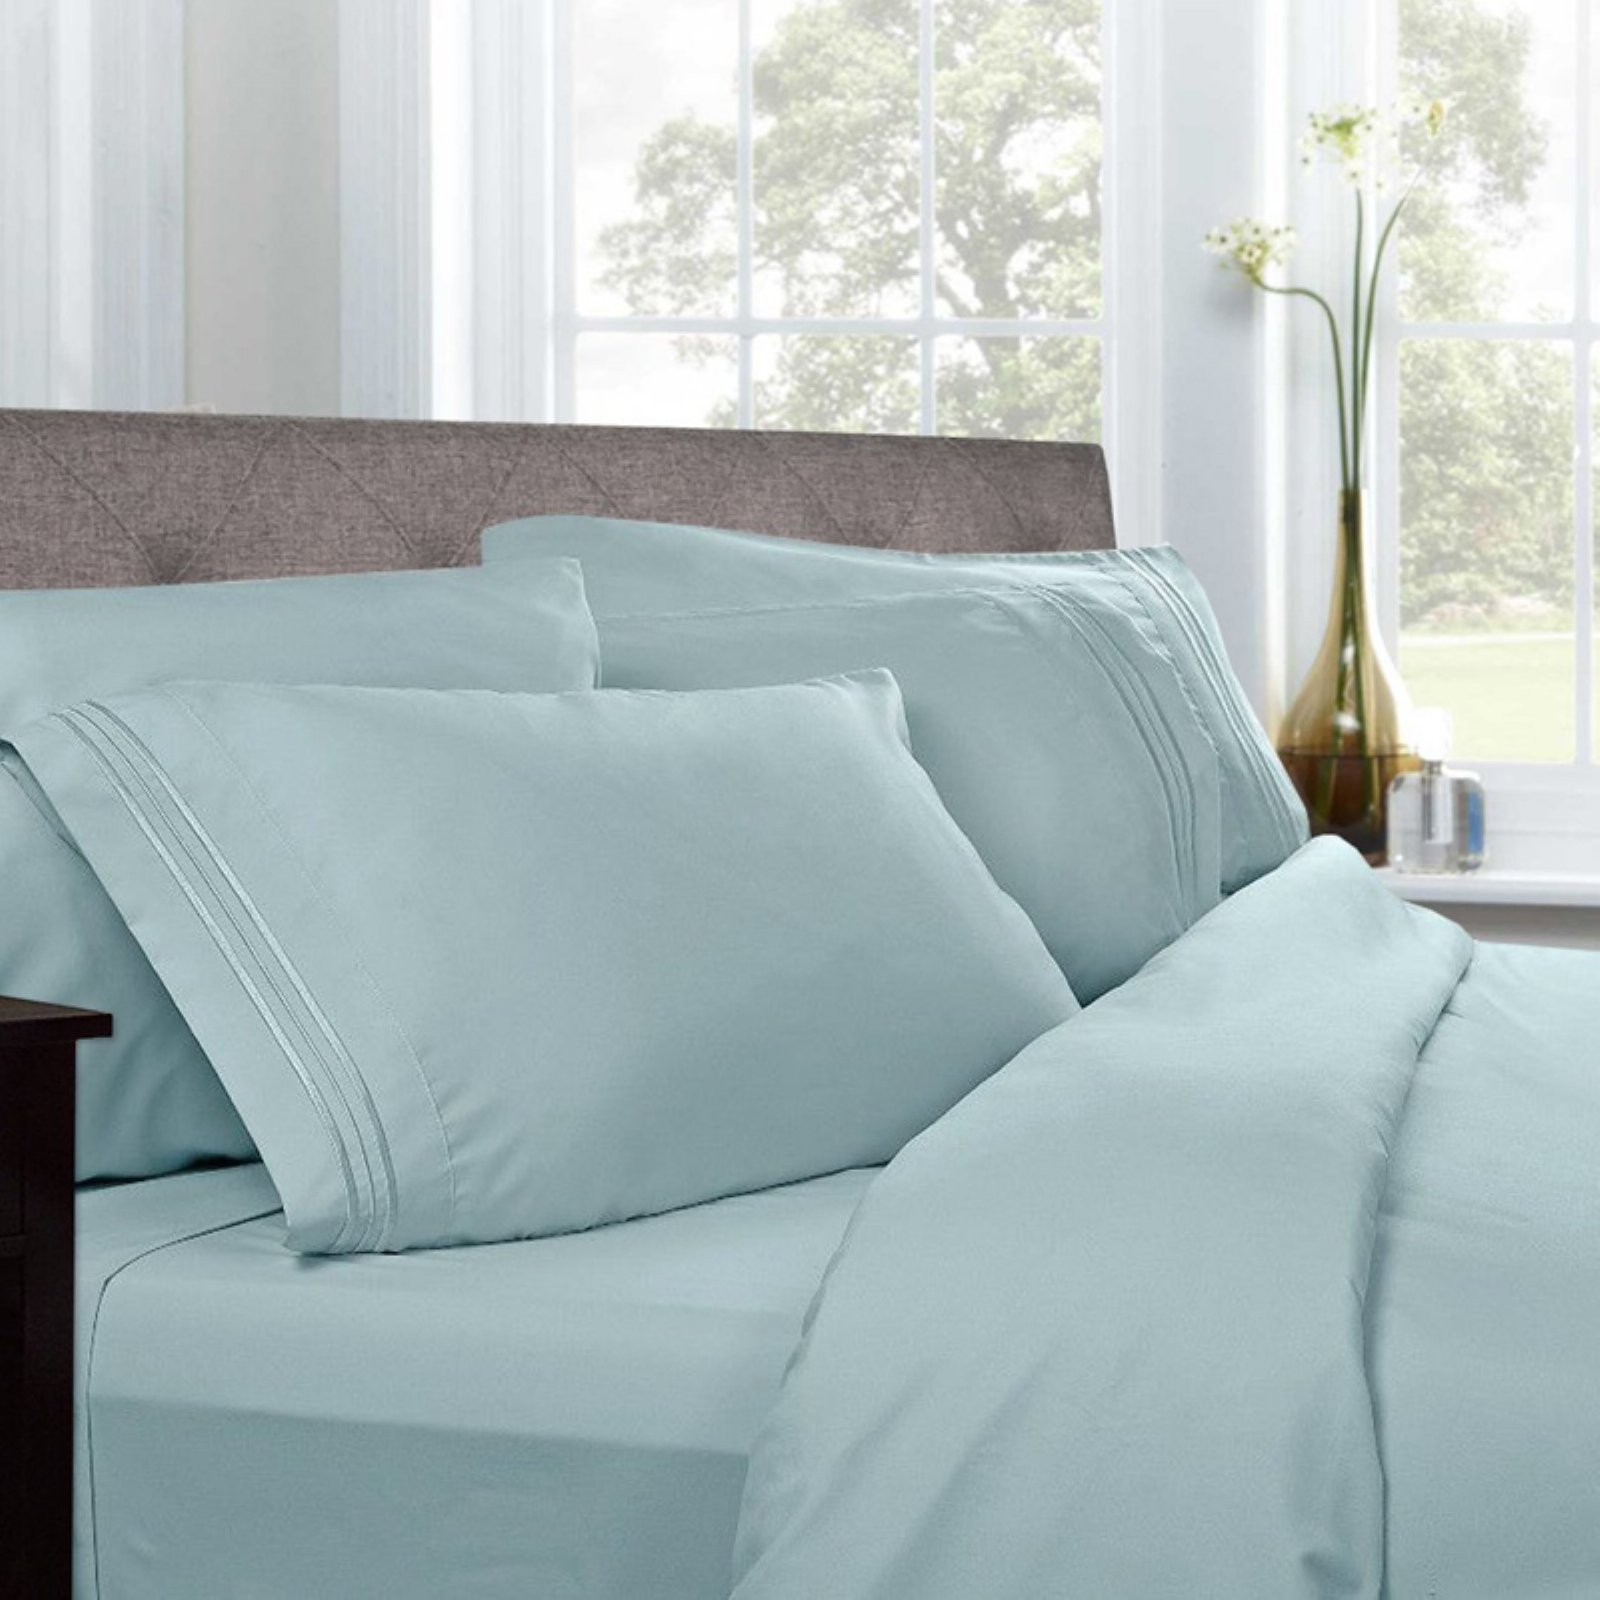 1500 Thread Count Pleated Egyptian Sheet Set by Sweet Home Collection